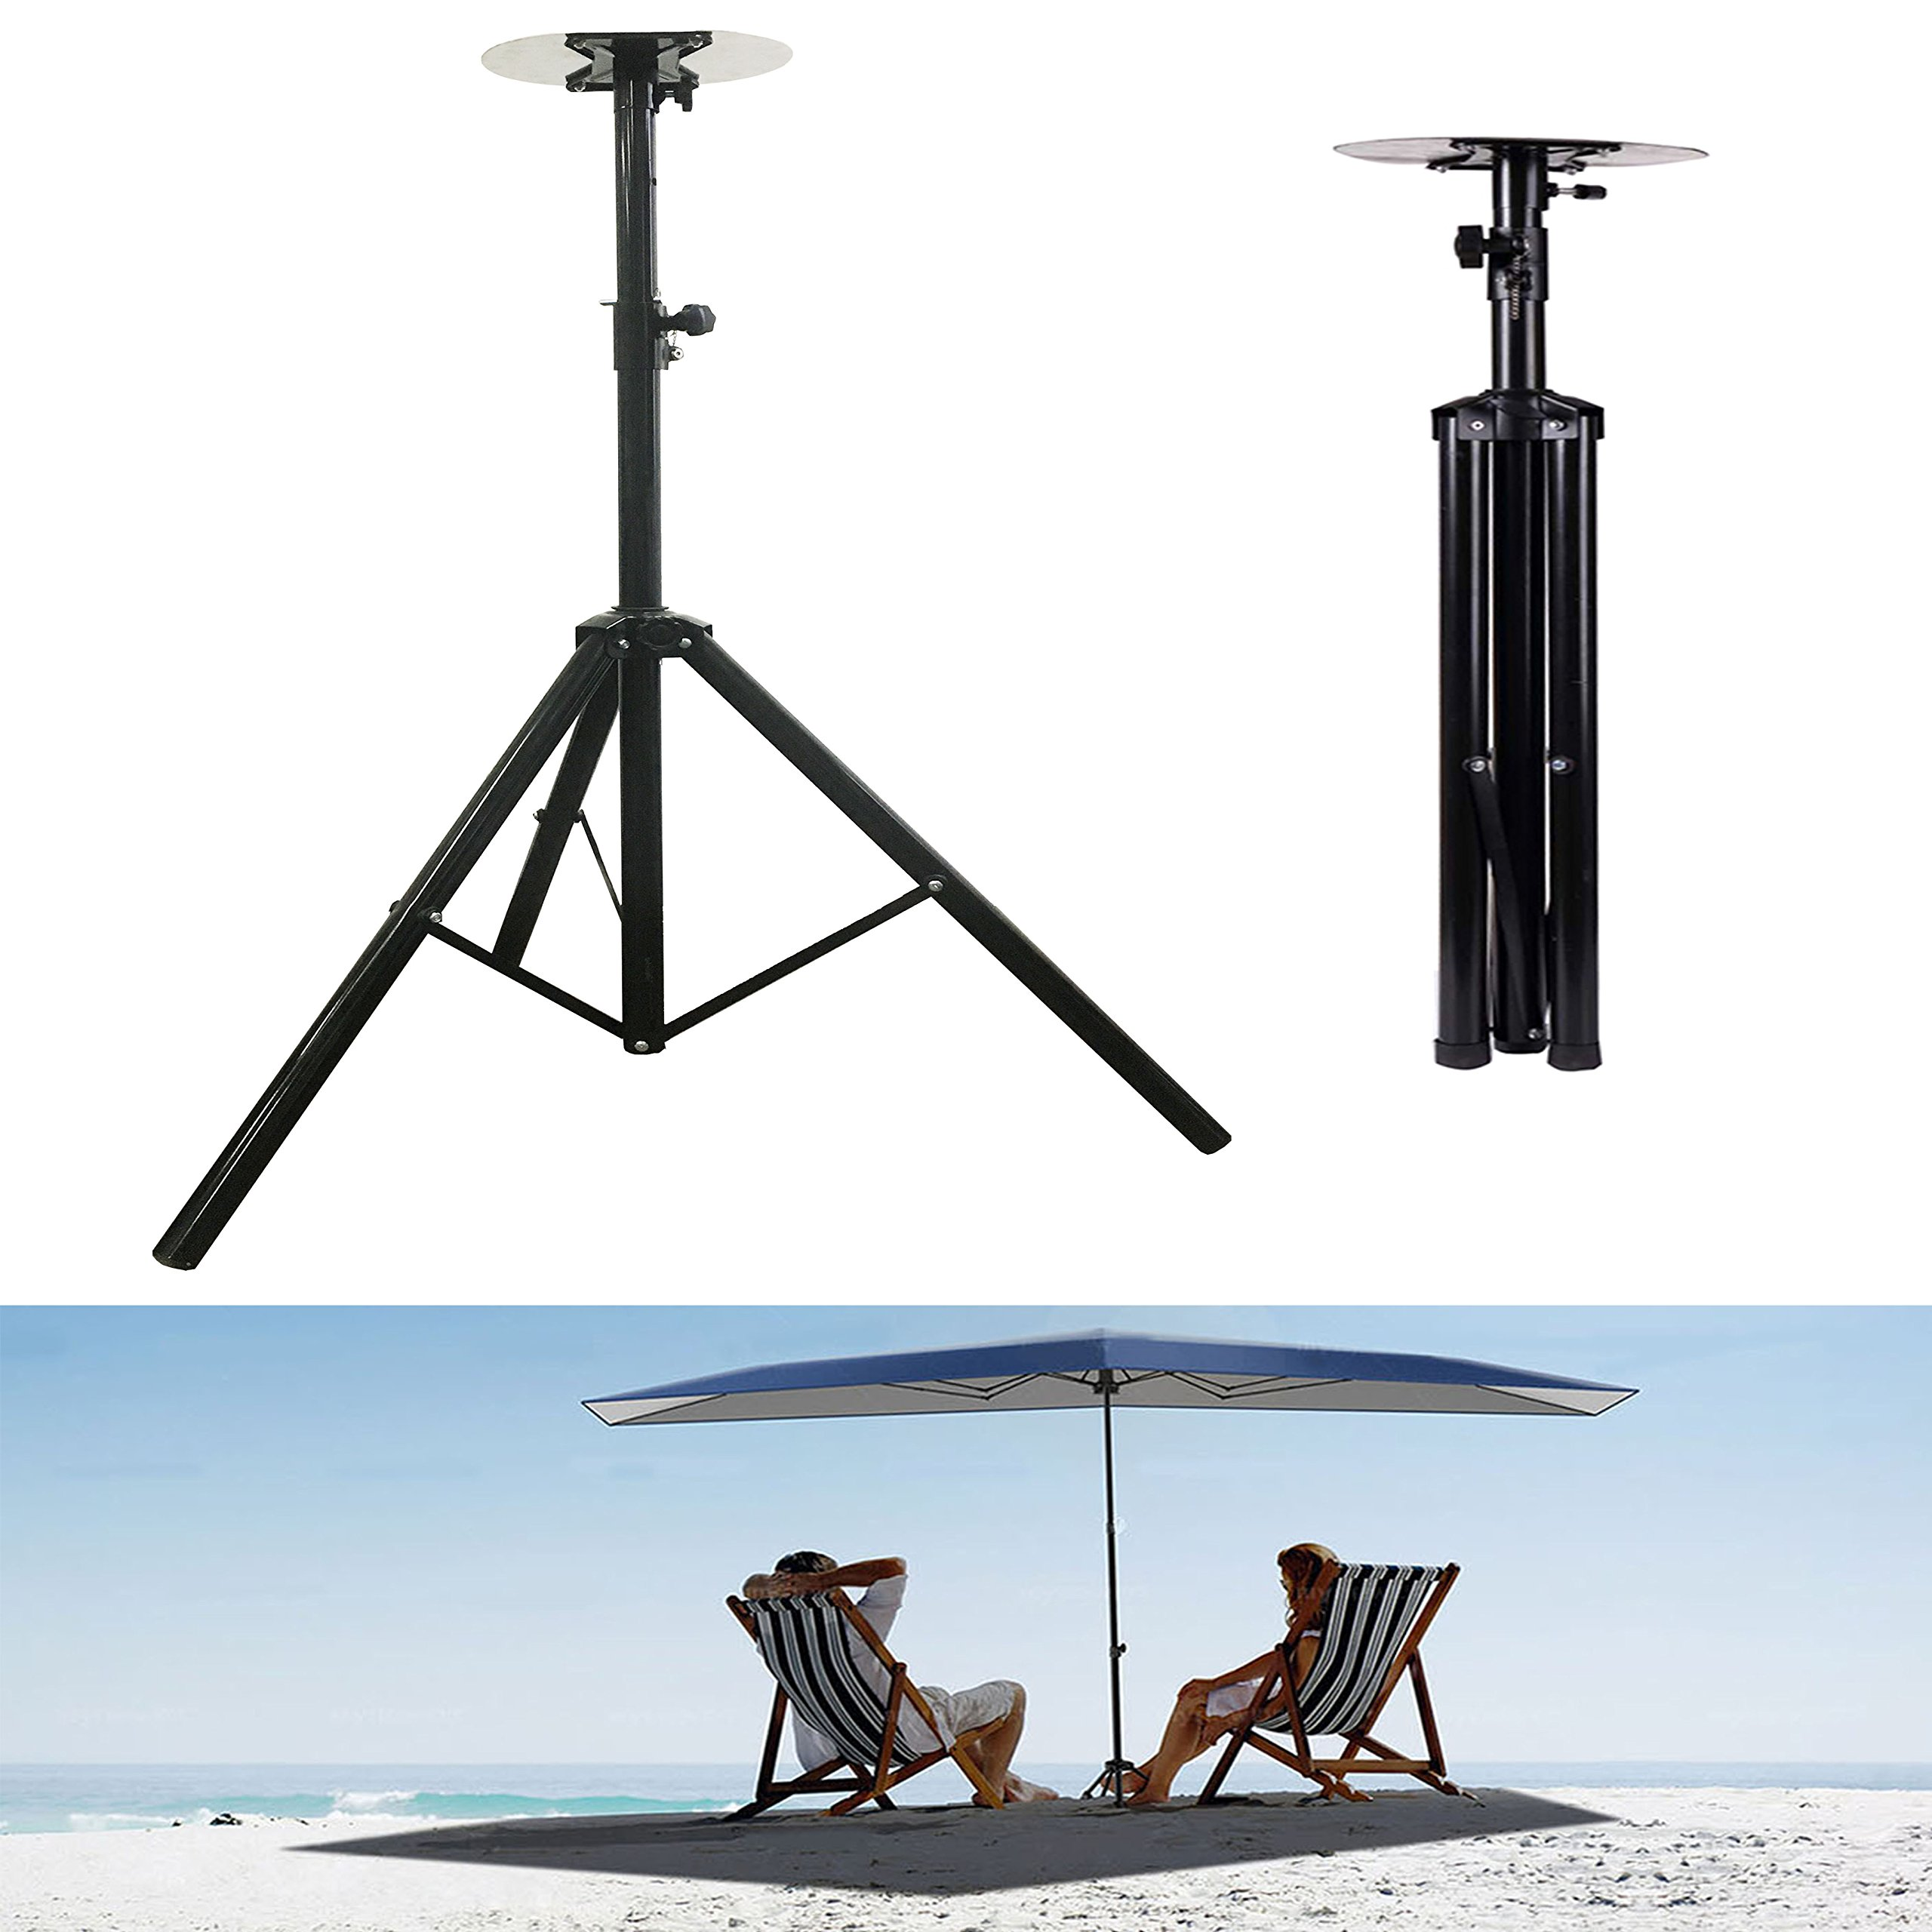 Reliancer 6.9FT Car Tent Stands Tripod for Umbrellas Movable Carport Support Sunproof Sun Shade Canopy Lights Holder w/4xGalvanized Steel Tent Pegsx10ft RopesxCarabiner Hooks